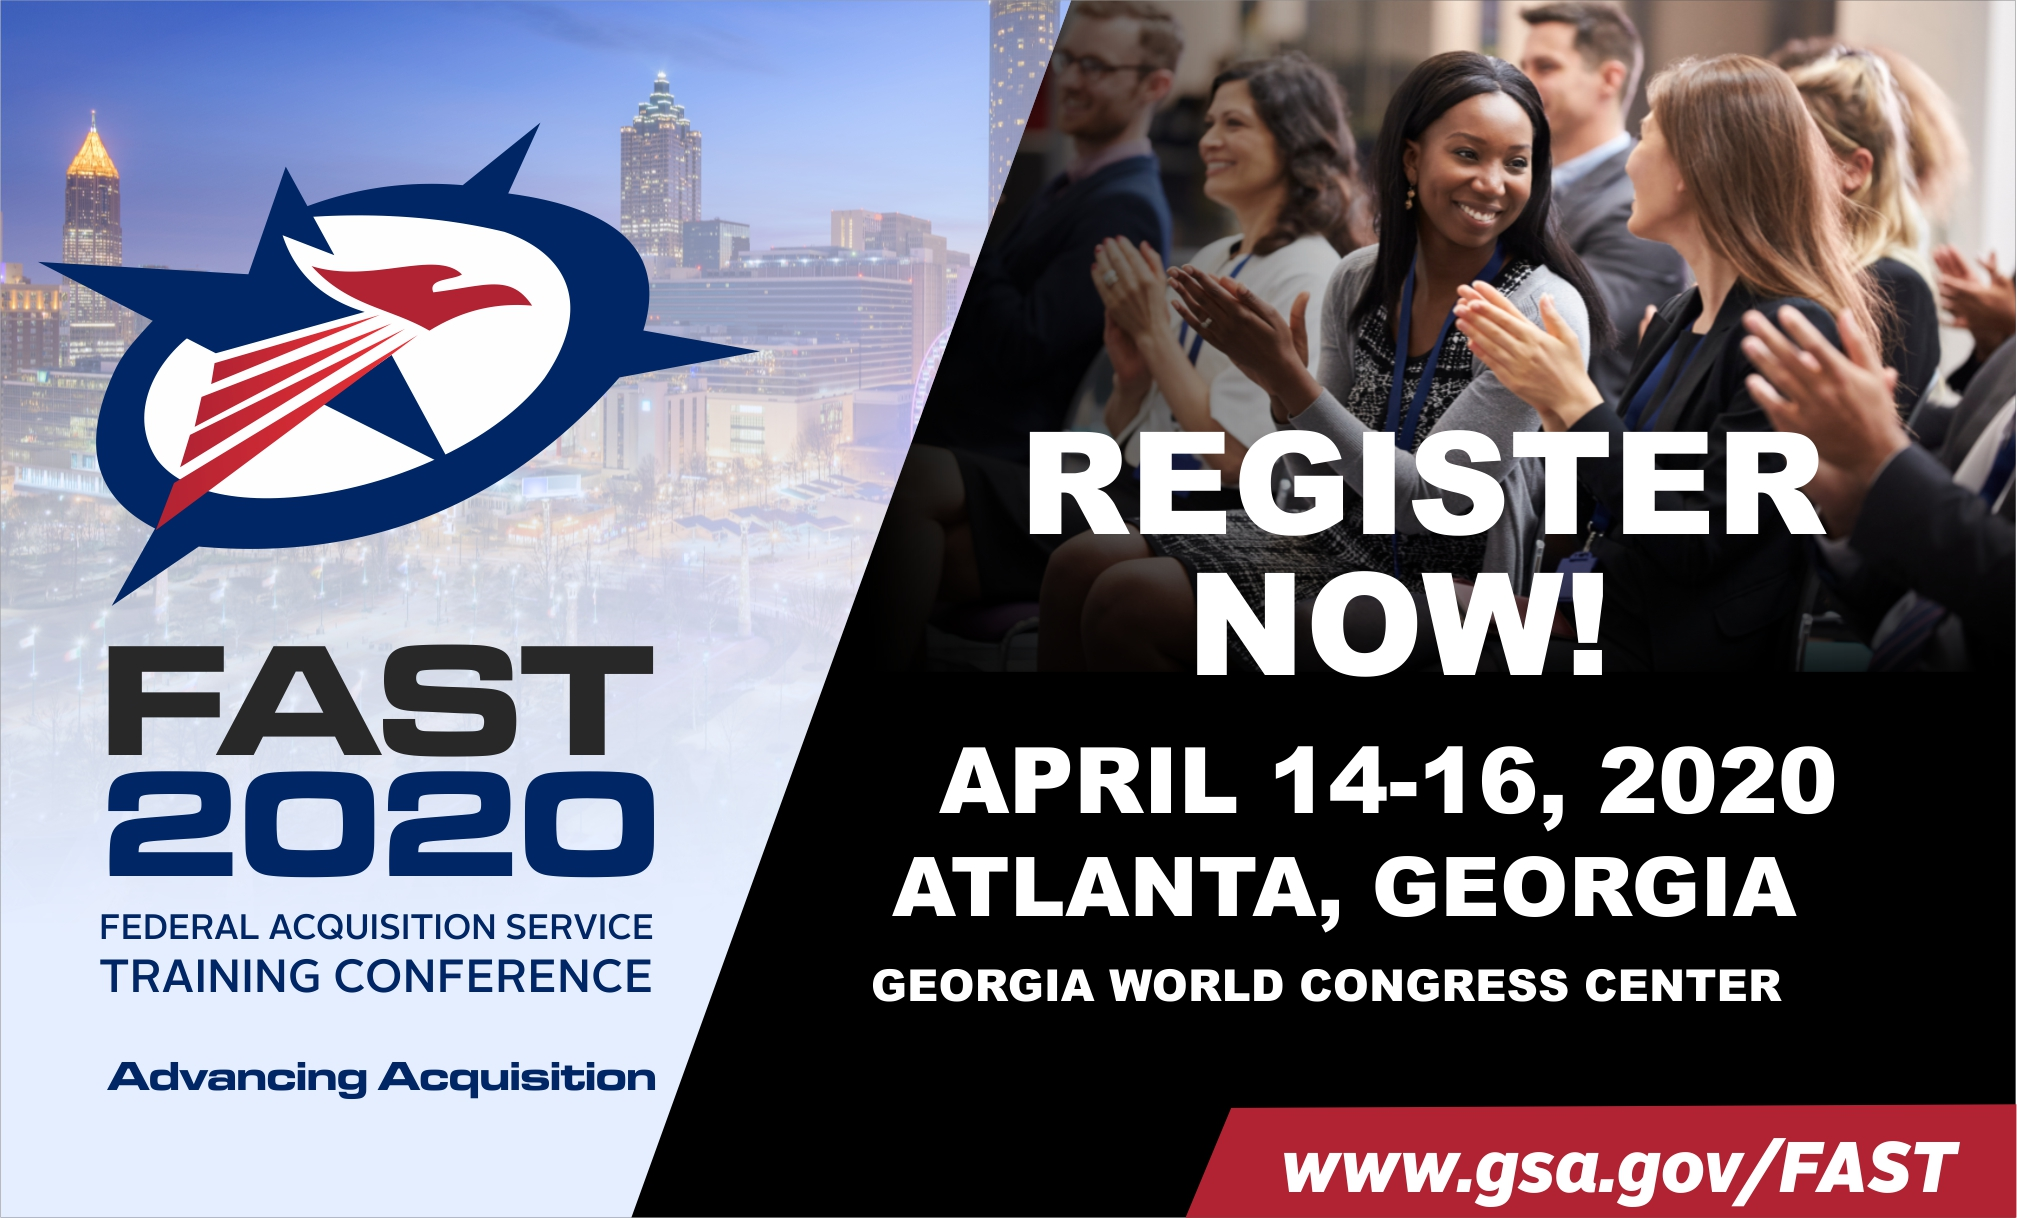 FAST 2020 Federal Acquisition Service Training Conference, April 14 - 16 2020, Atlanta Georgia